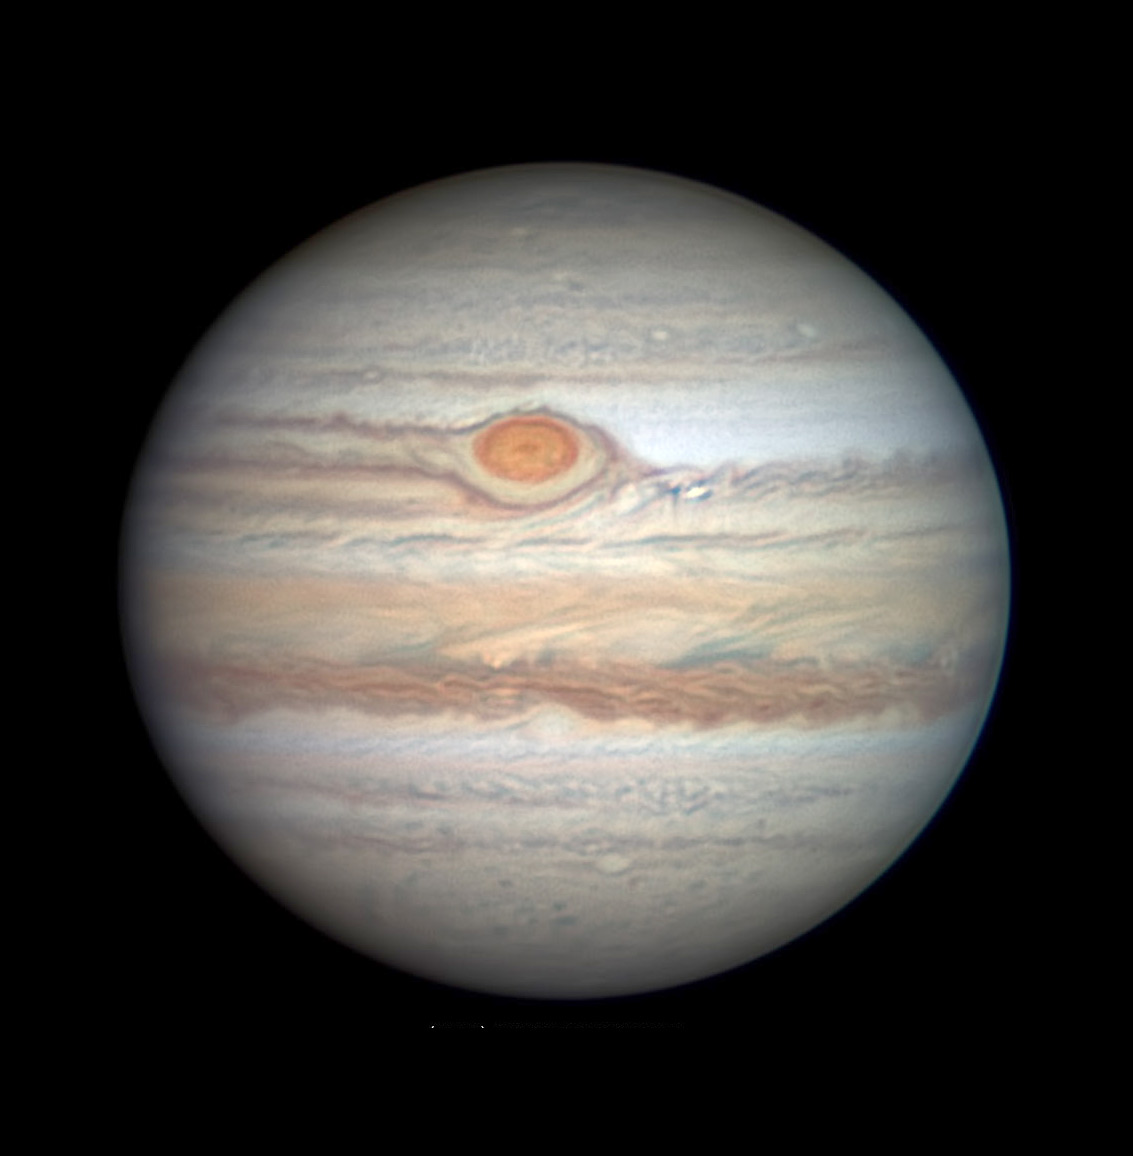 Jupiter with Great Red Spot on May 12, 2019